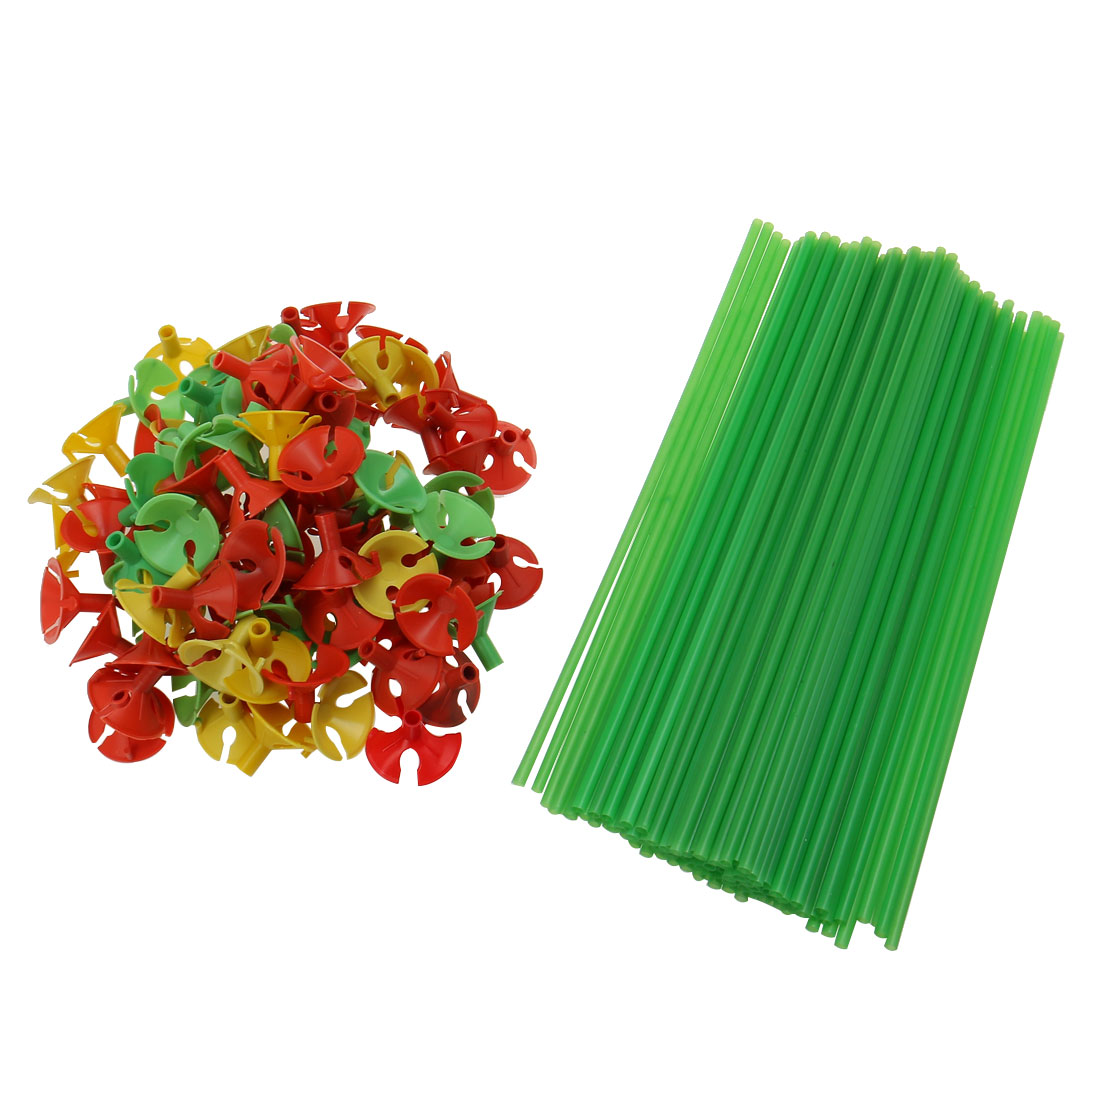 100 Pcs Party Festival Decoration Plastic Green Balloon Sticks w Cups Red